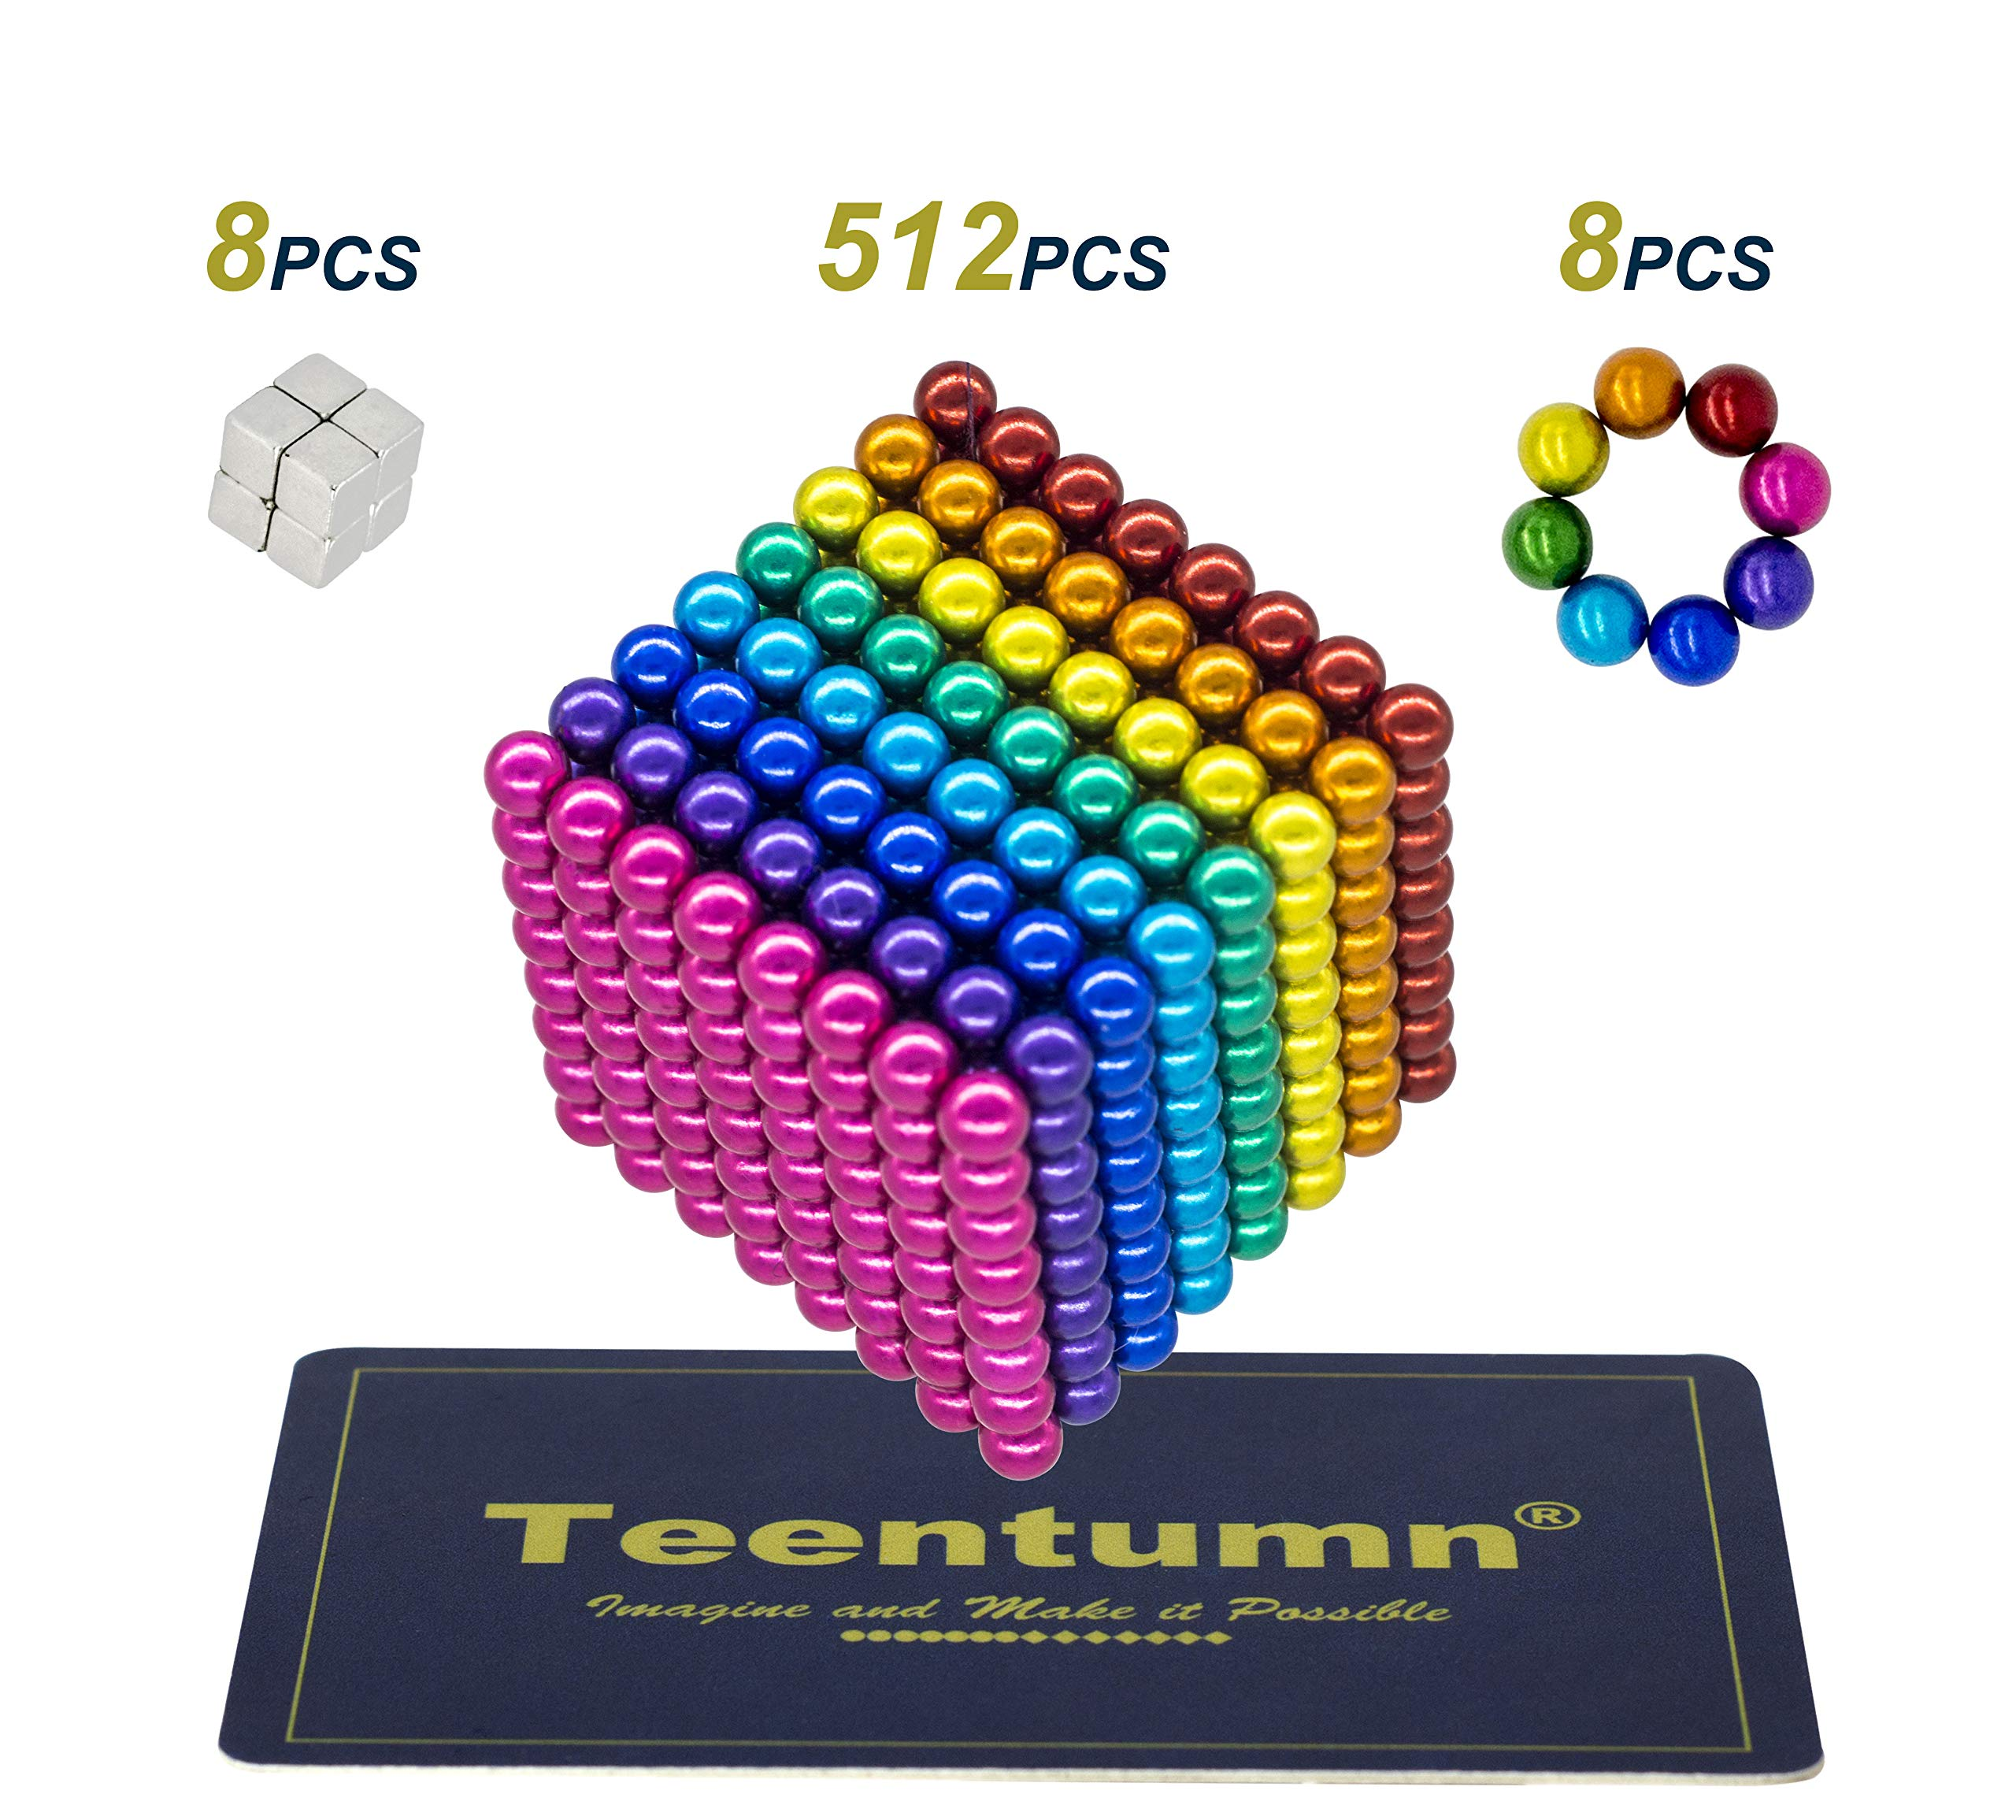 Teentumn 528 Pieces 5mm Sculpture Building Blocks Toys for Intelligence Learning -Office Toy & Stress Relief for Adults Rainbow Colorful